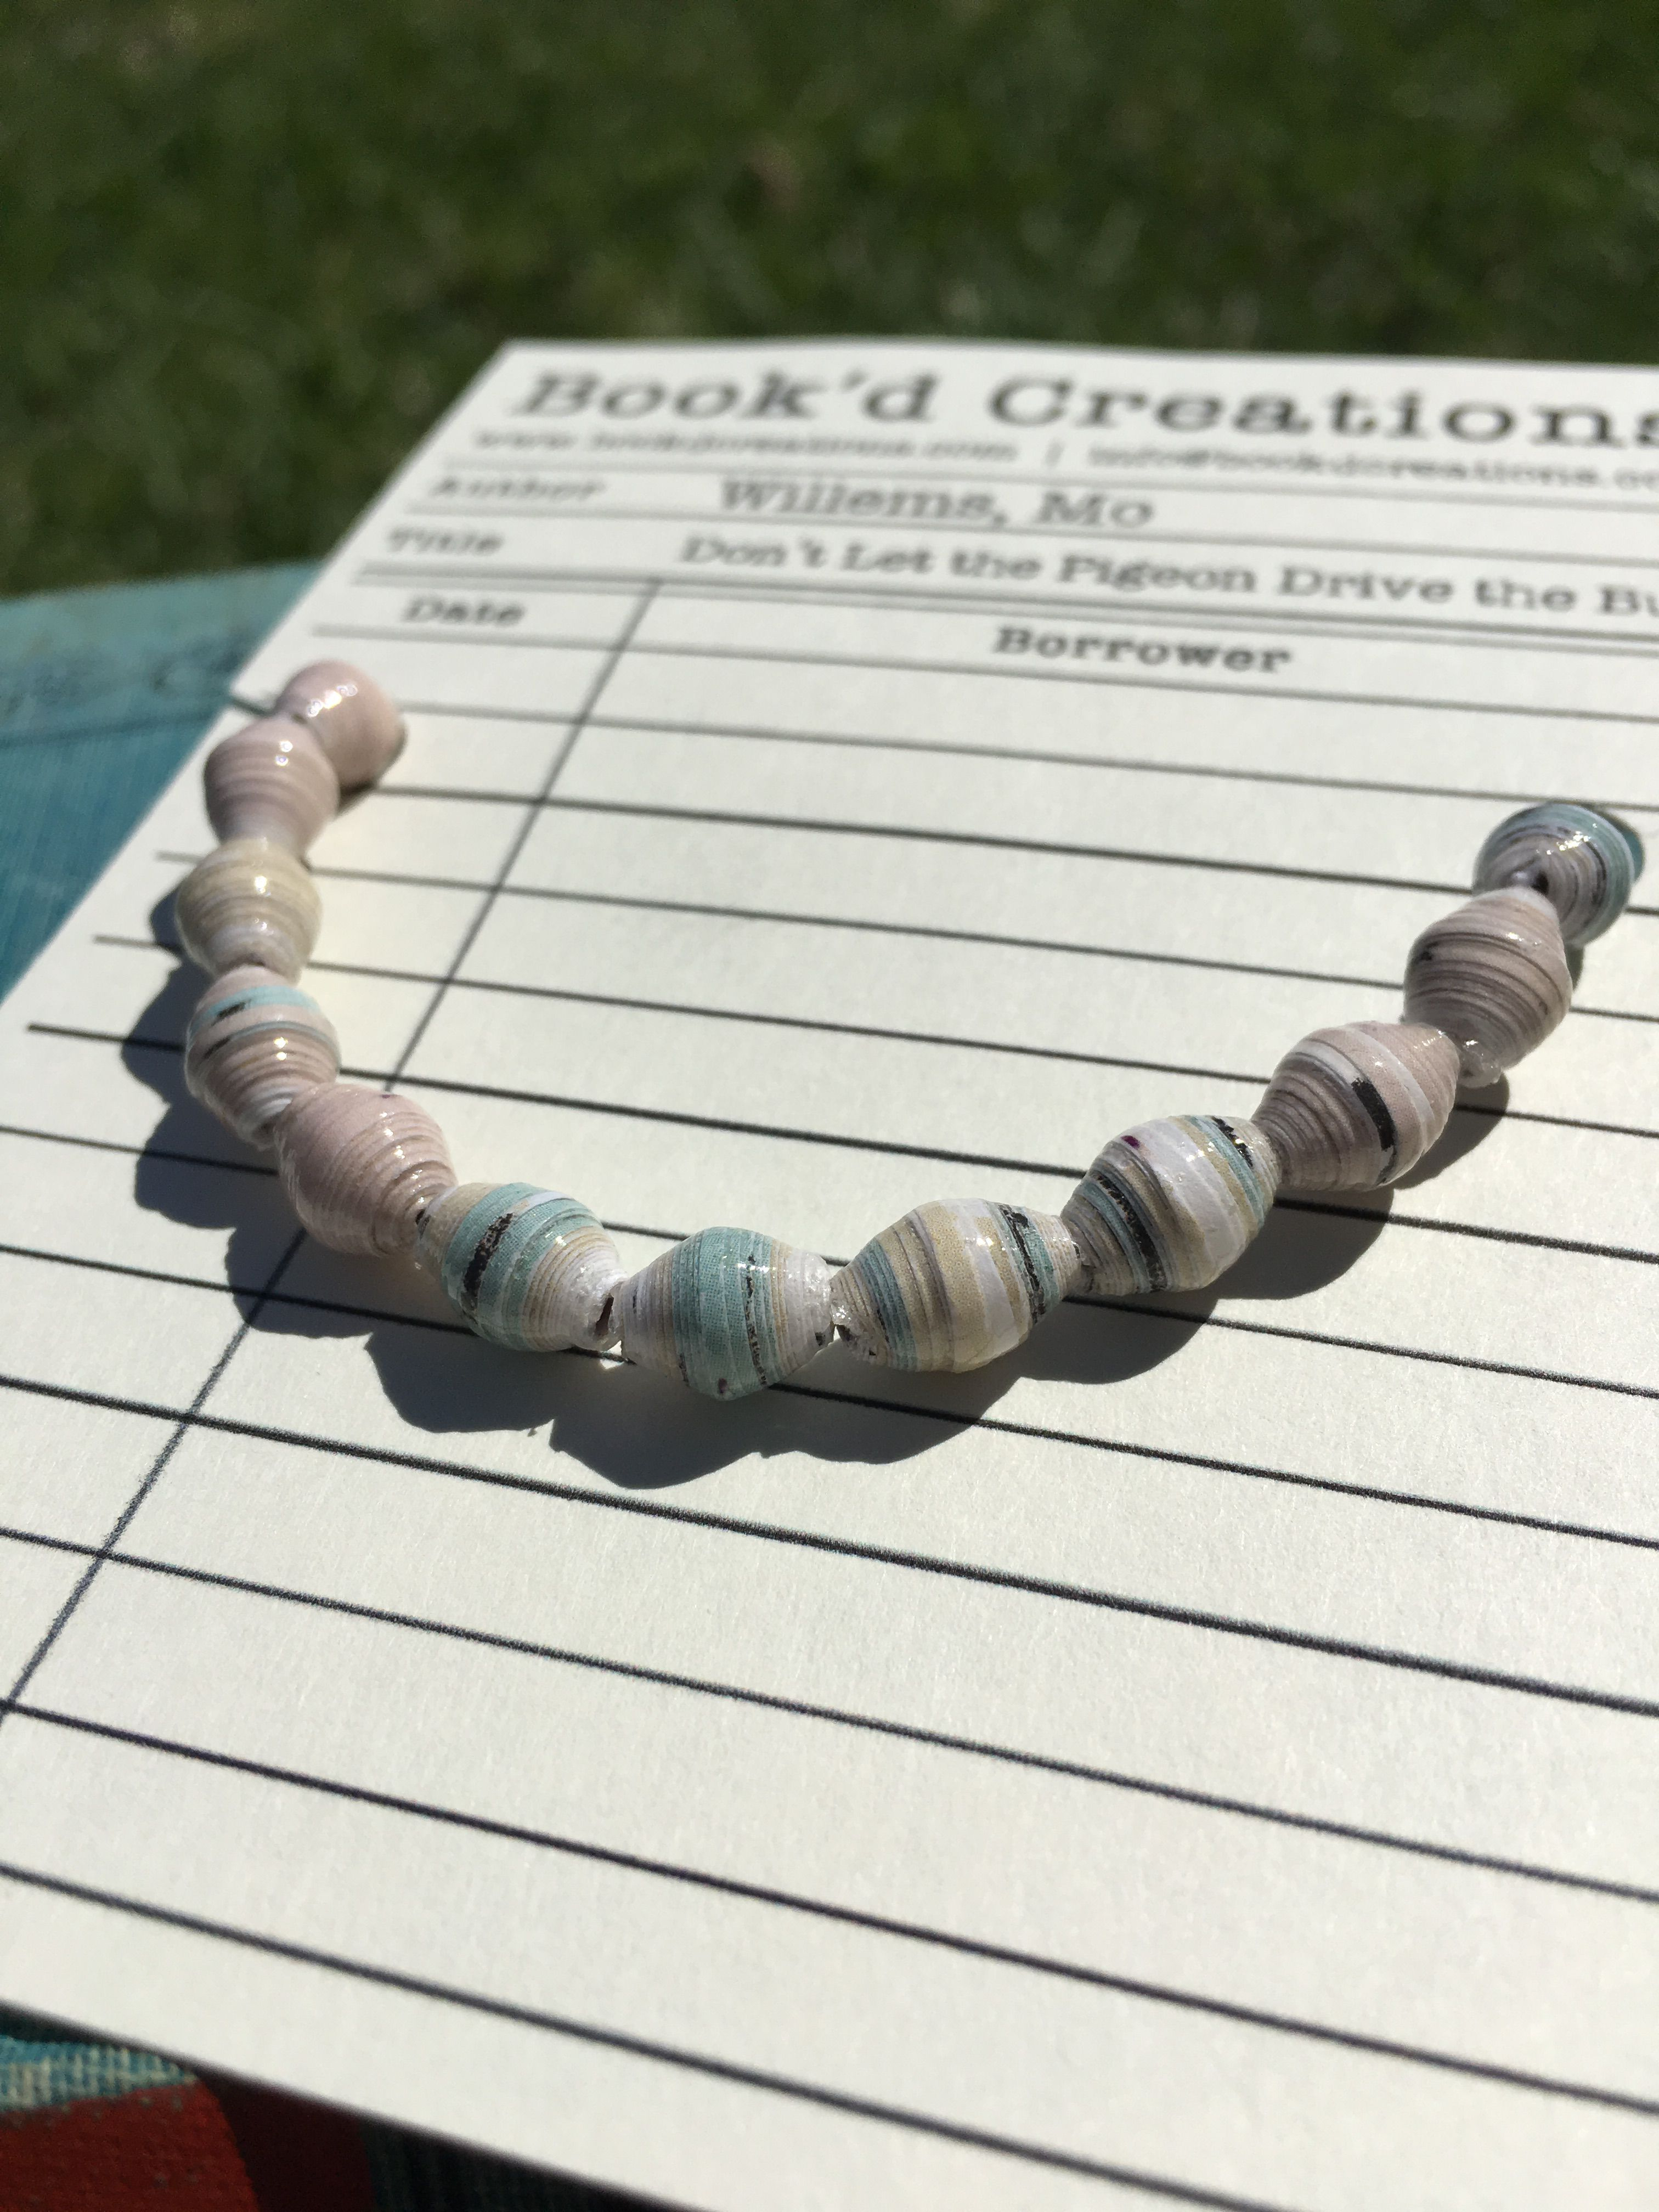 bookworms librarians teachers booklovers mowillems gifts jewelry bracelet beads paper kids